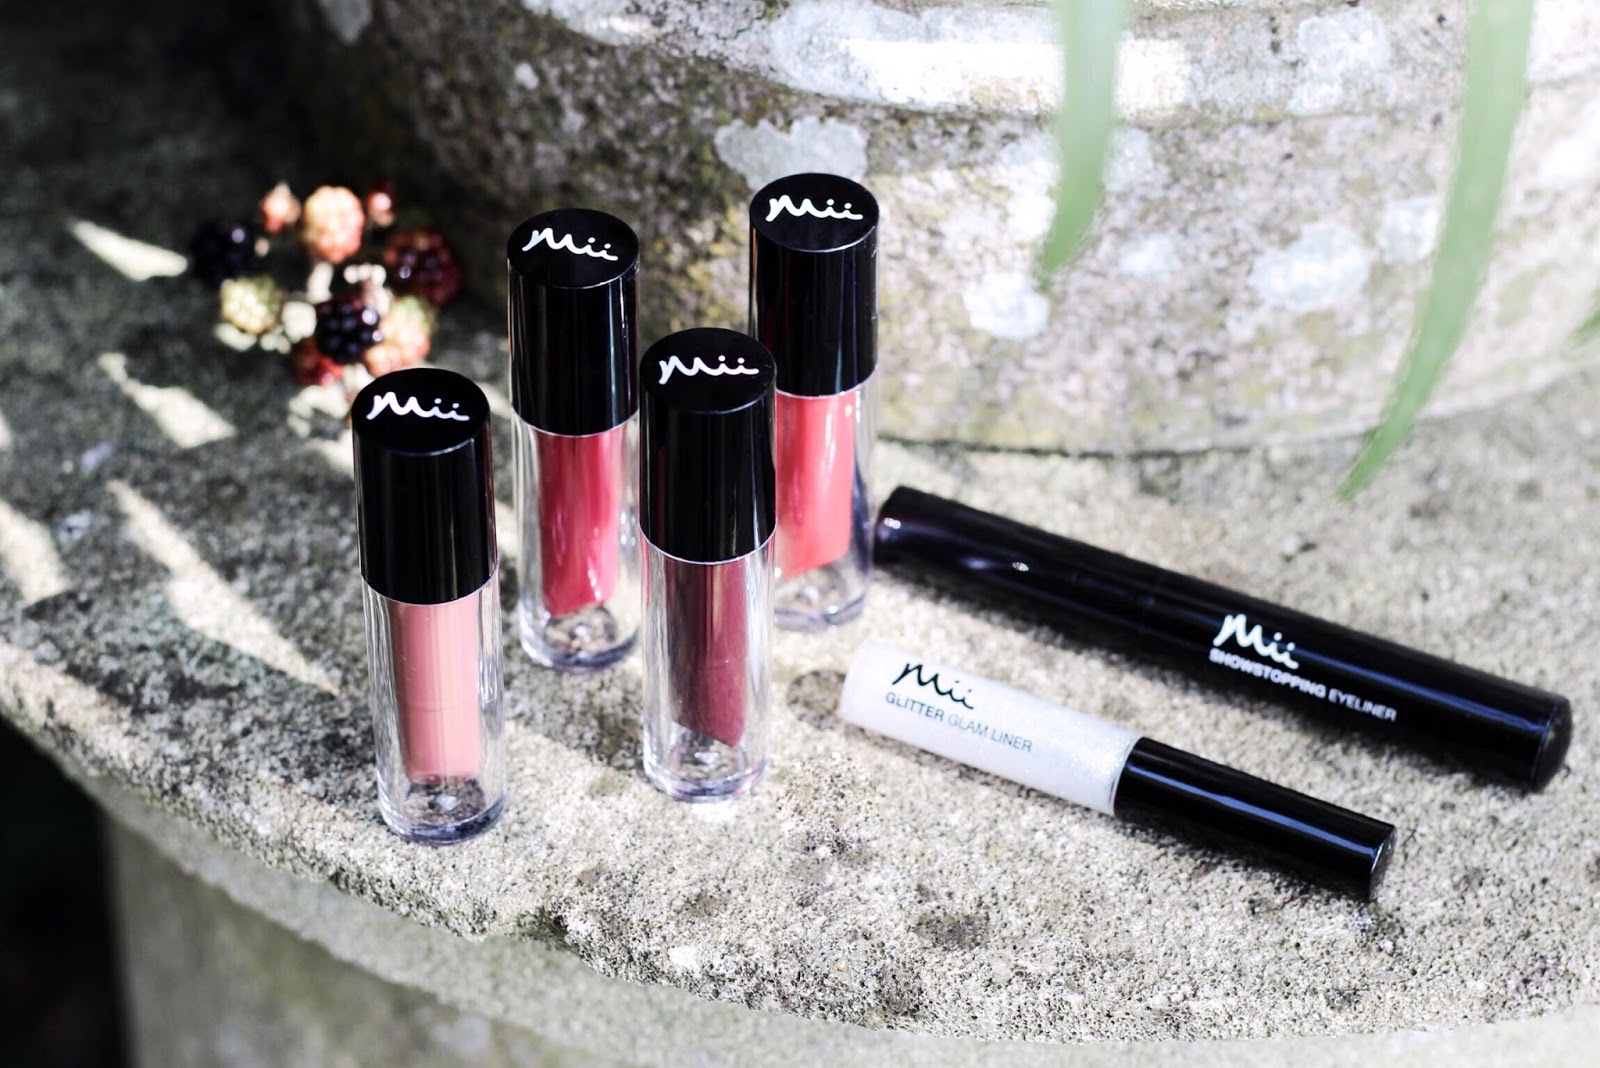 Mii Cosmetics Supernova Lip Cremes Blog Review